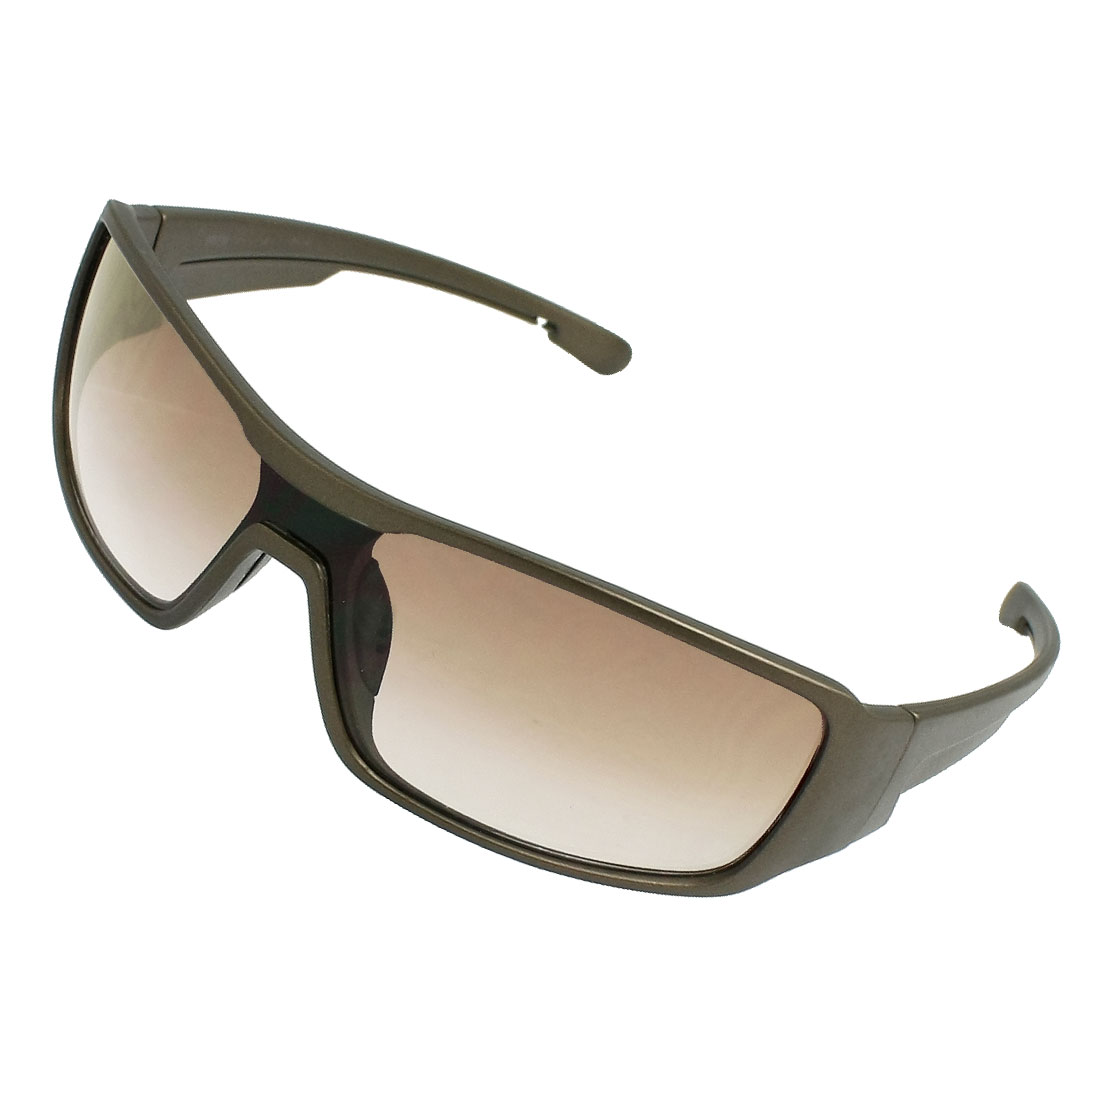 Plastic Wide Arms Rectangle Lens Sunglasses Dark Brown for Men Woman